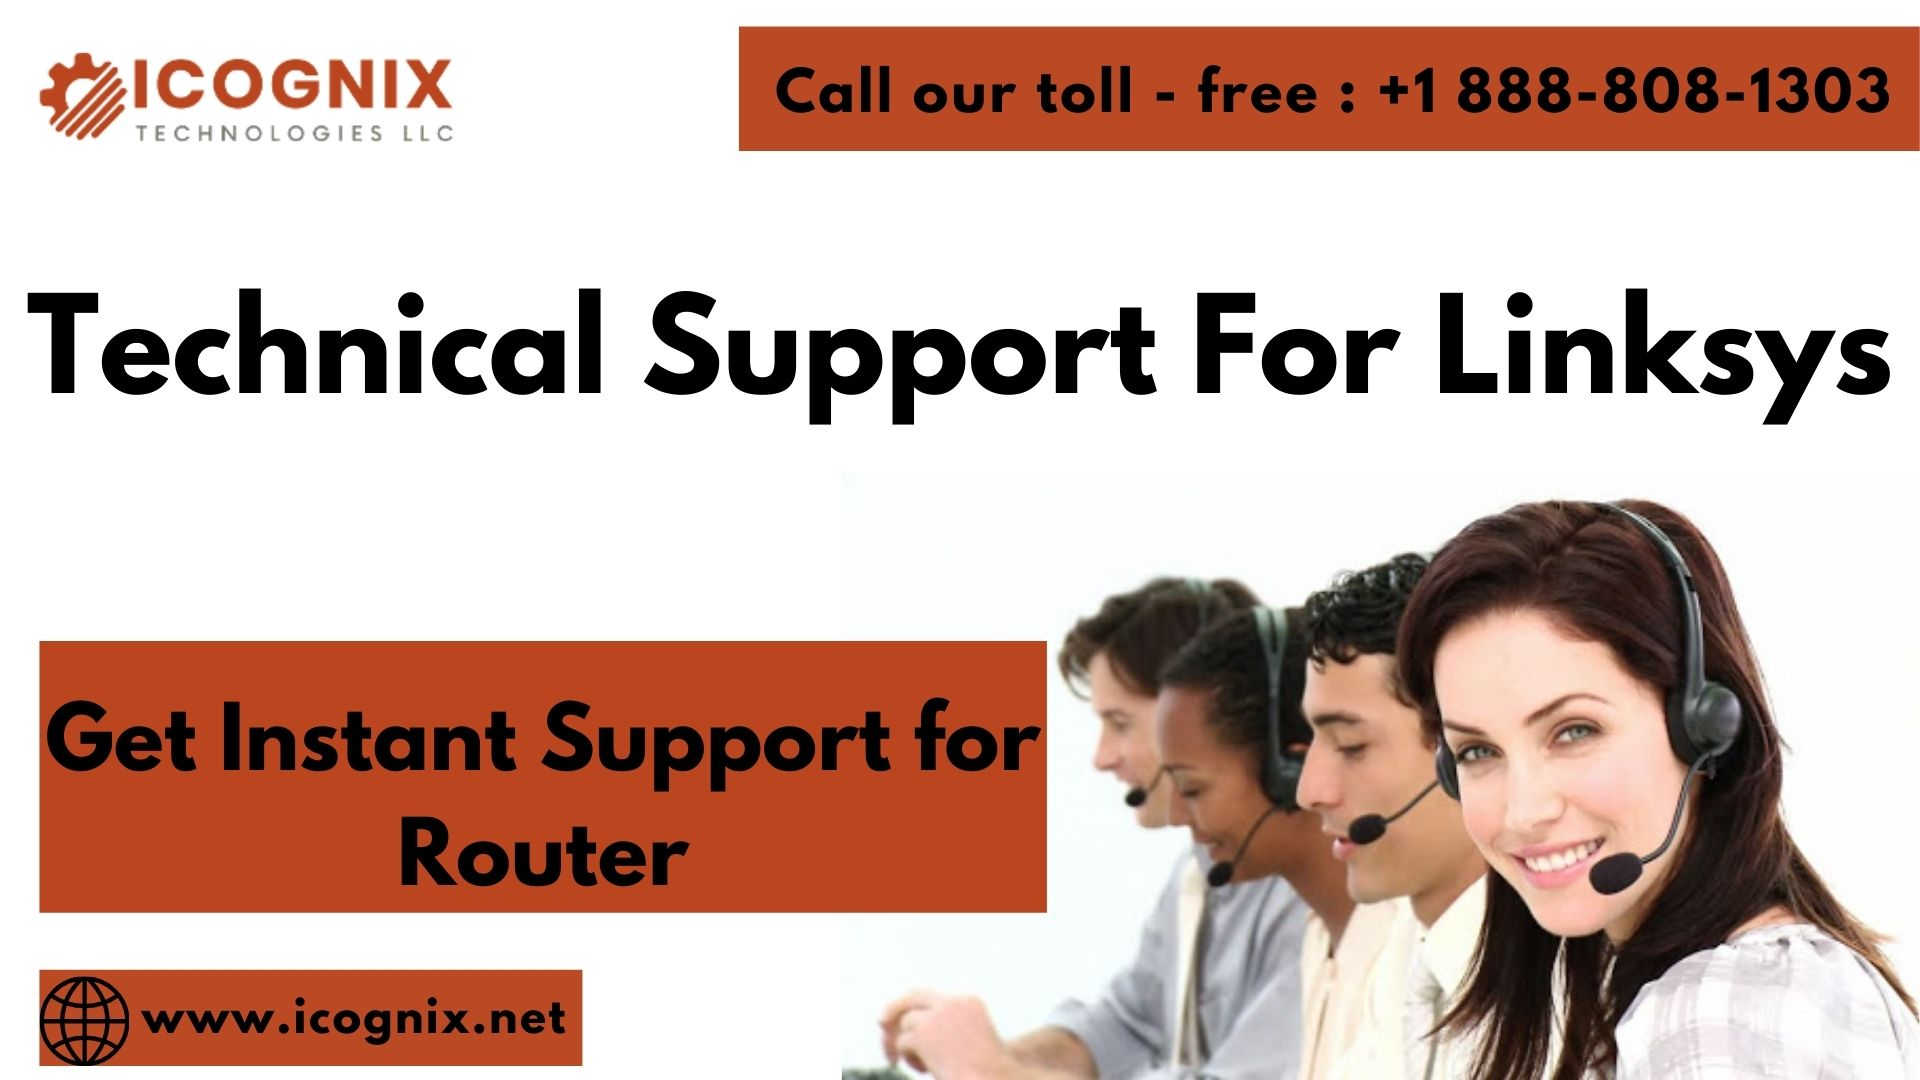 Technical Support For Linksys